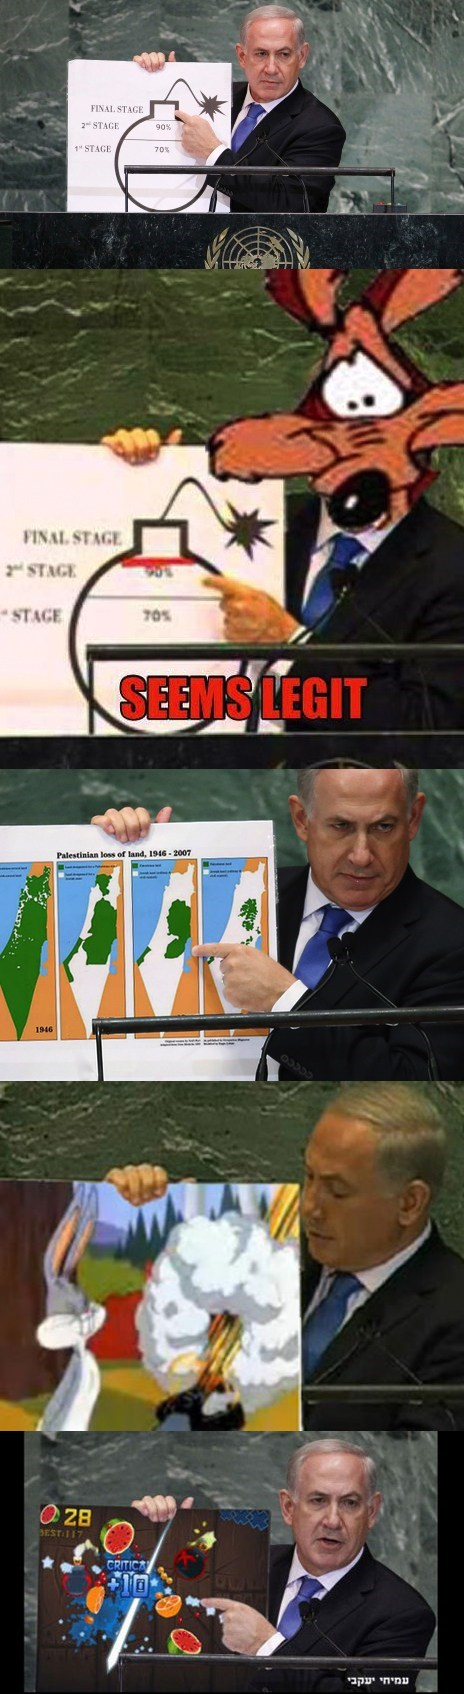 Pundit Kitchen: The Internet's Response to Netanyahu's Presentation